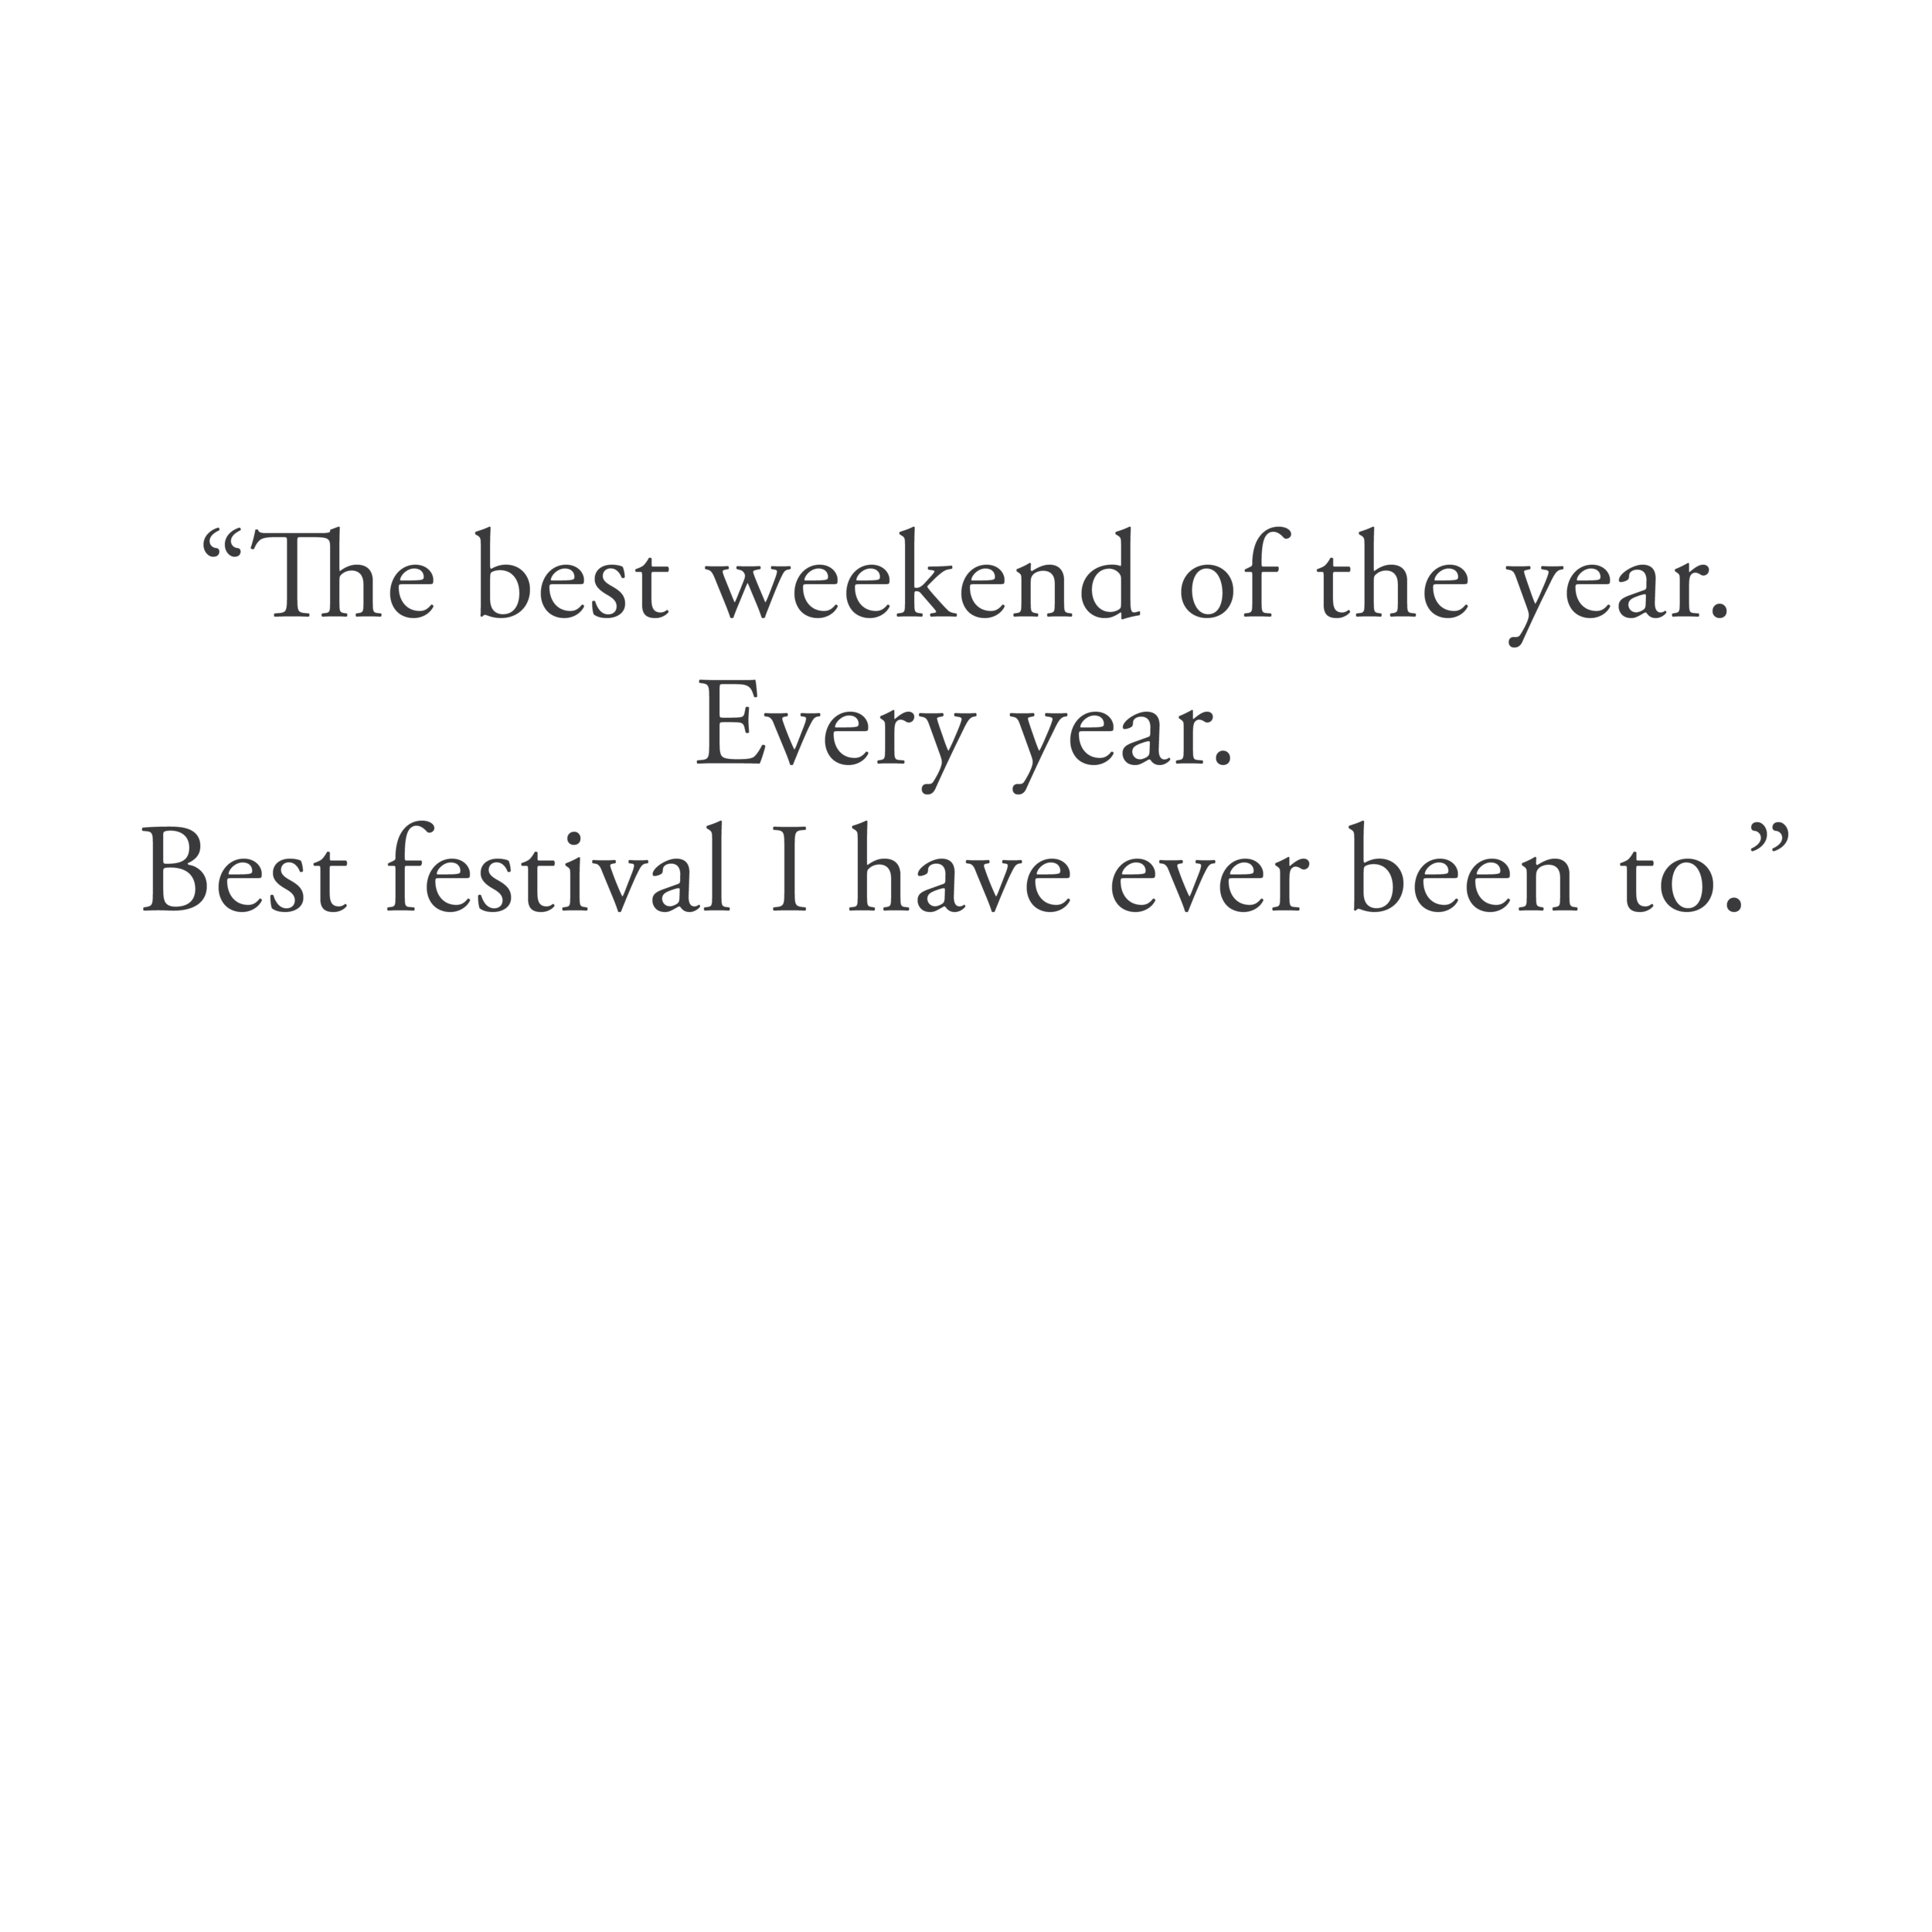 Leopallooza quote 1-01.png